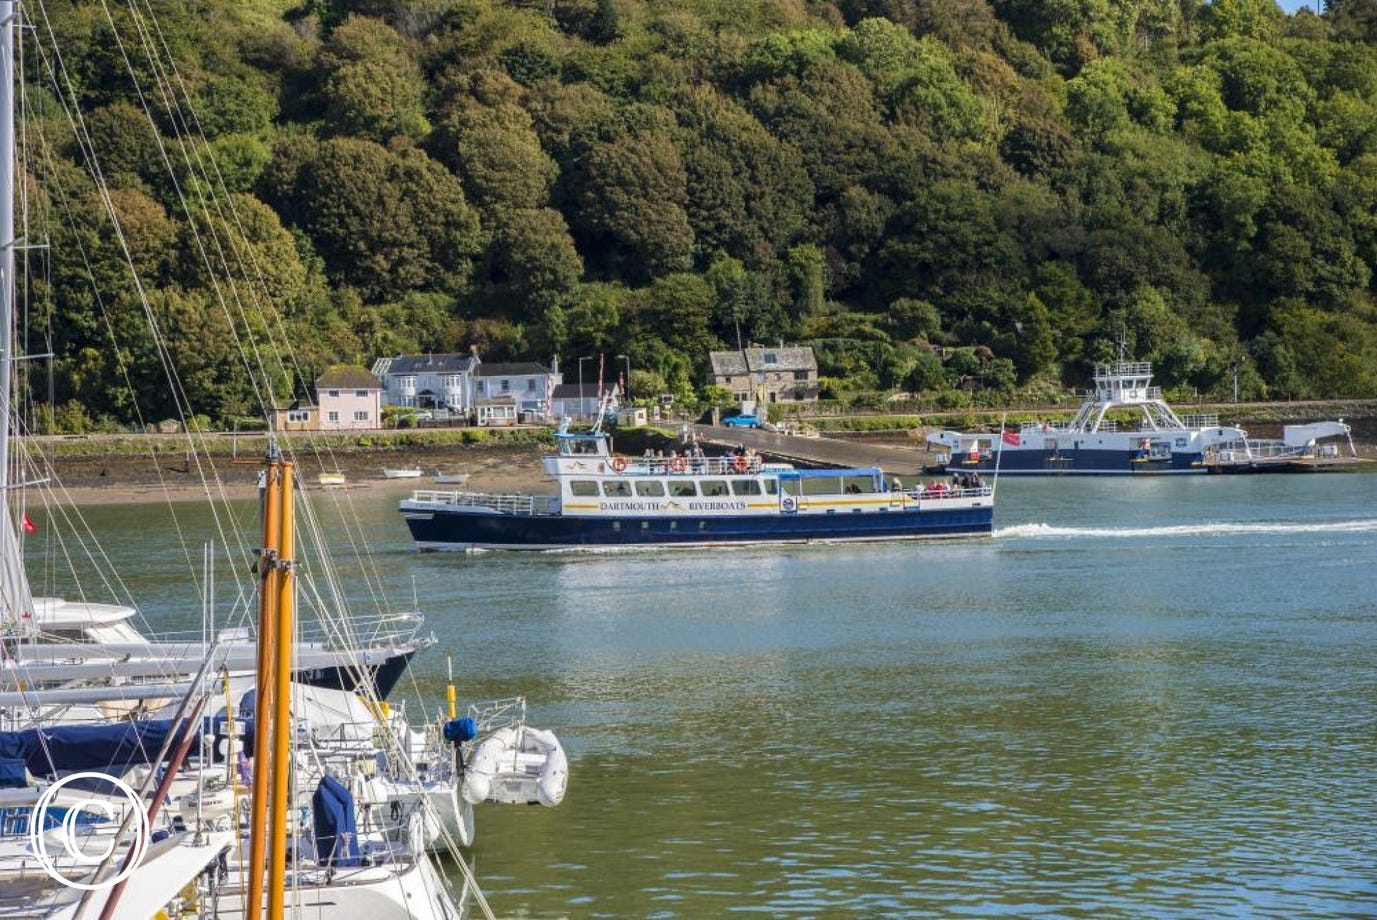 Views of the Lower Ferry and passenger ferry on the River Dart from Serenity's terrace!